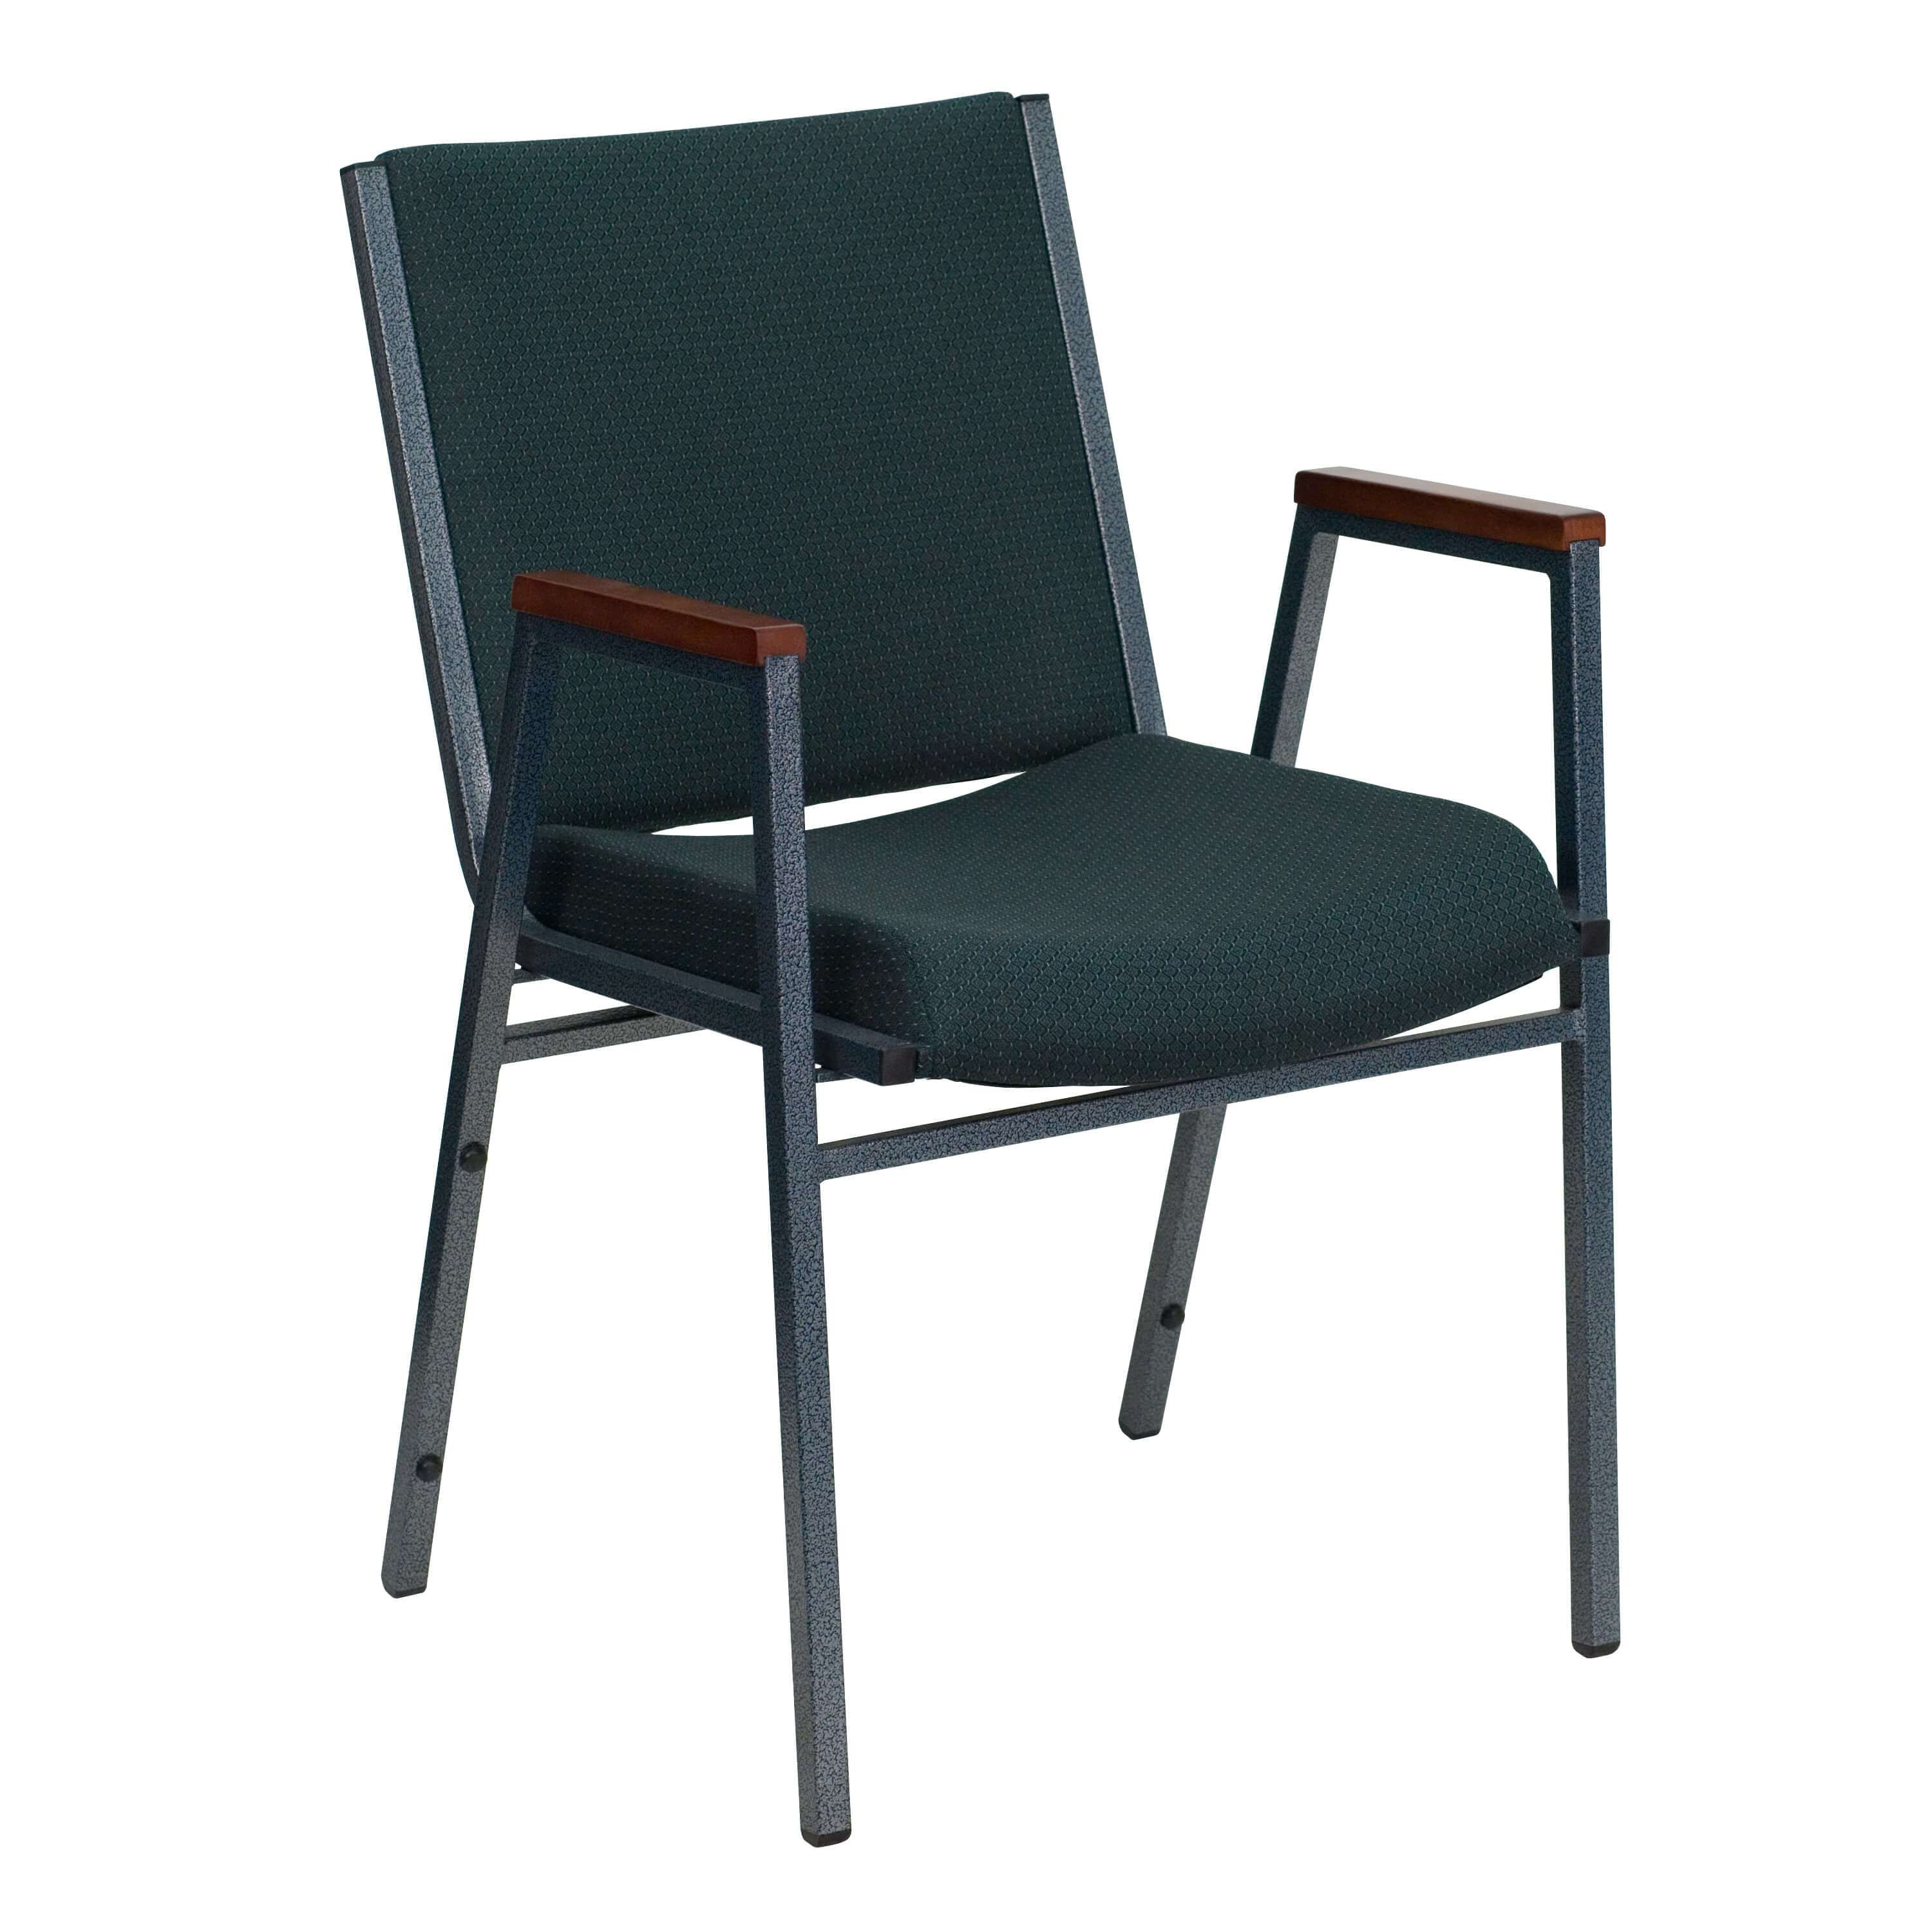 Stackable chairs CUB XU 60154 GN GG FLA